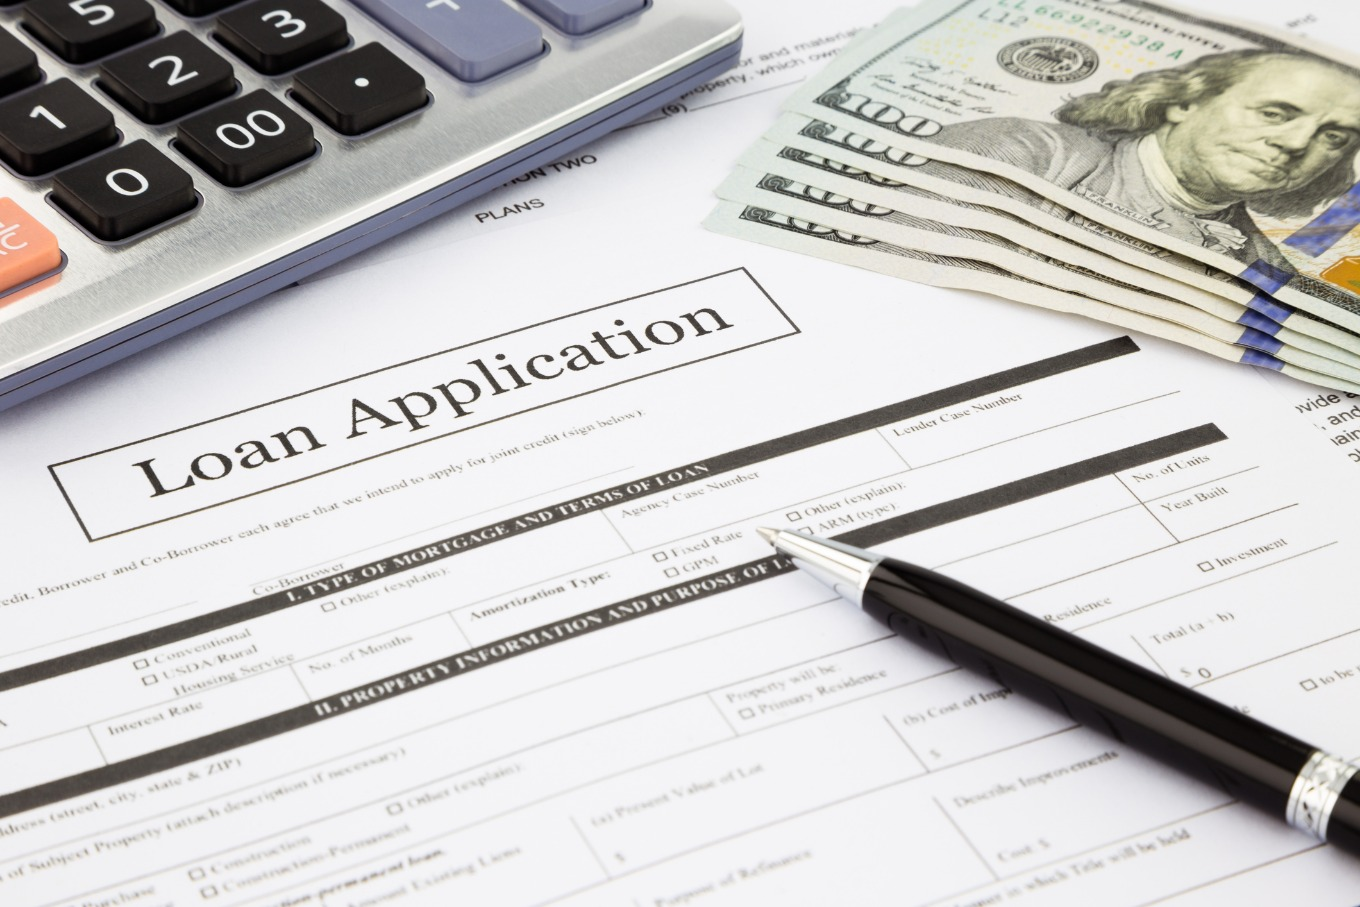 Home loan application with pen and calculator